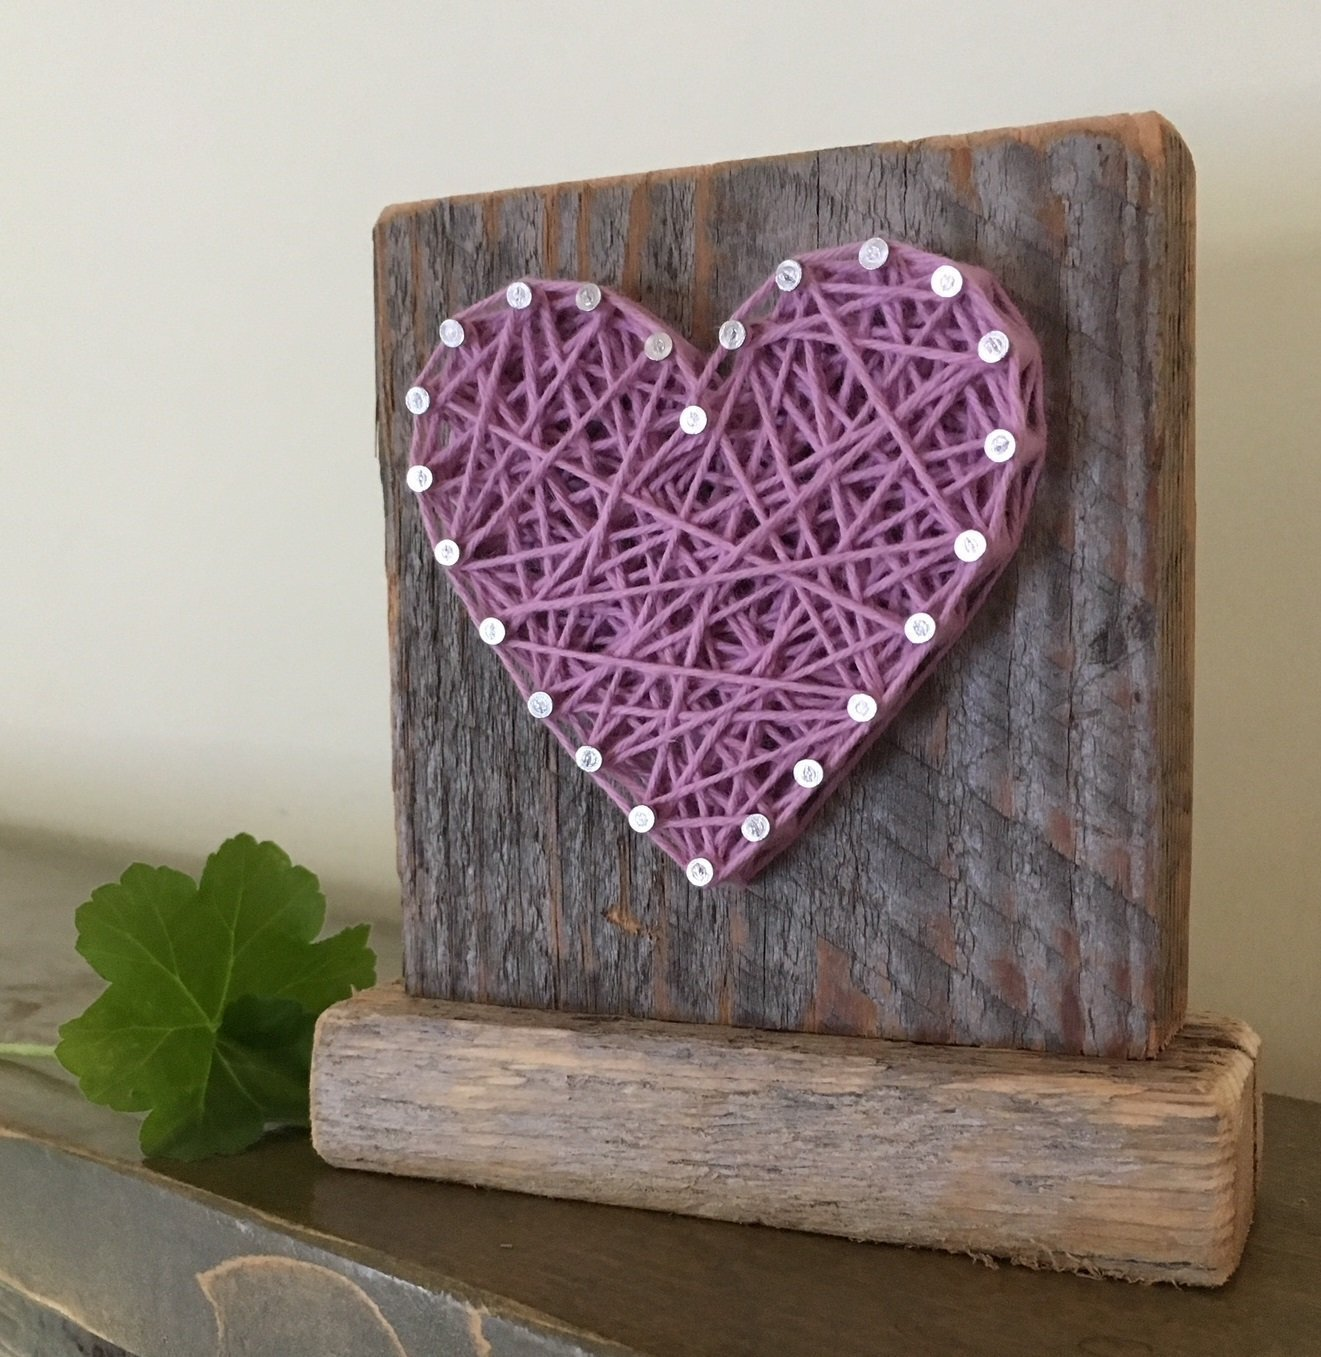 Sweet & small freestanding wooden lavender string art heart sign. Perfect for Mother's Day, home accents, Wedding favors, Anniversary gifts, nursery decoration and just because gifts by Nail it Art. by Nail it Art (Image #7)